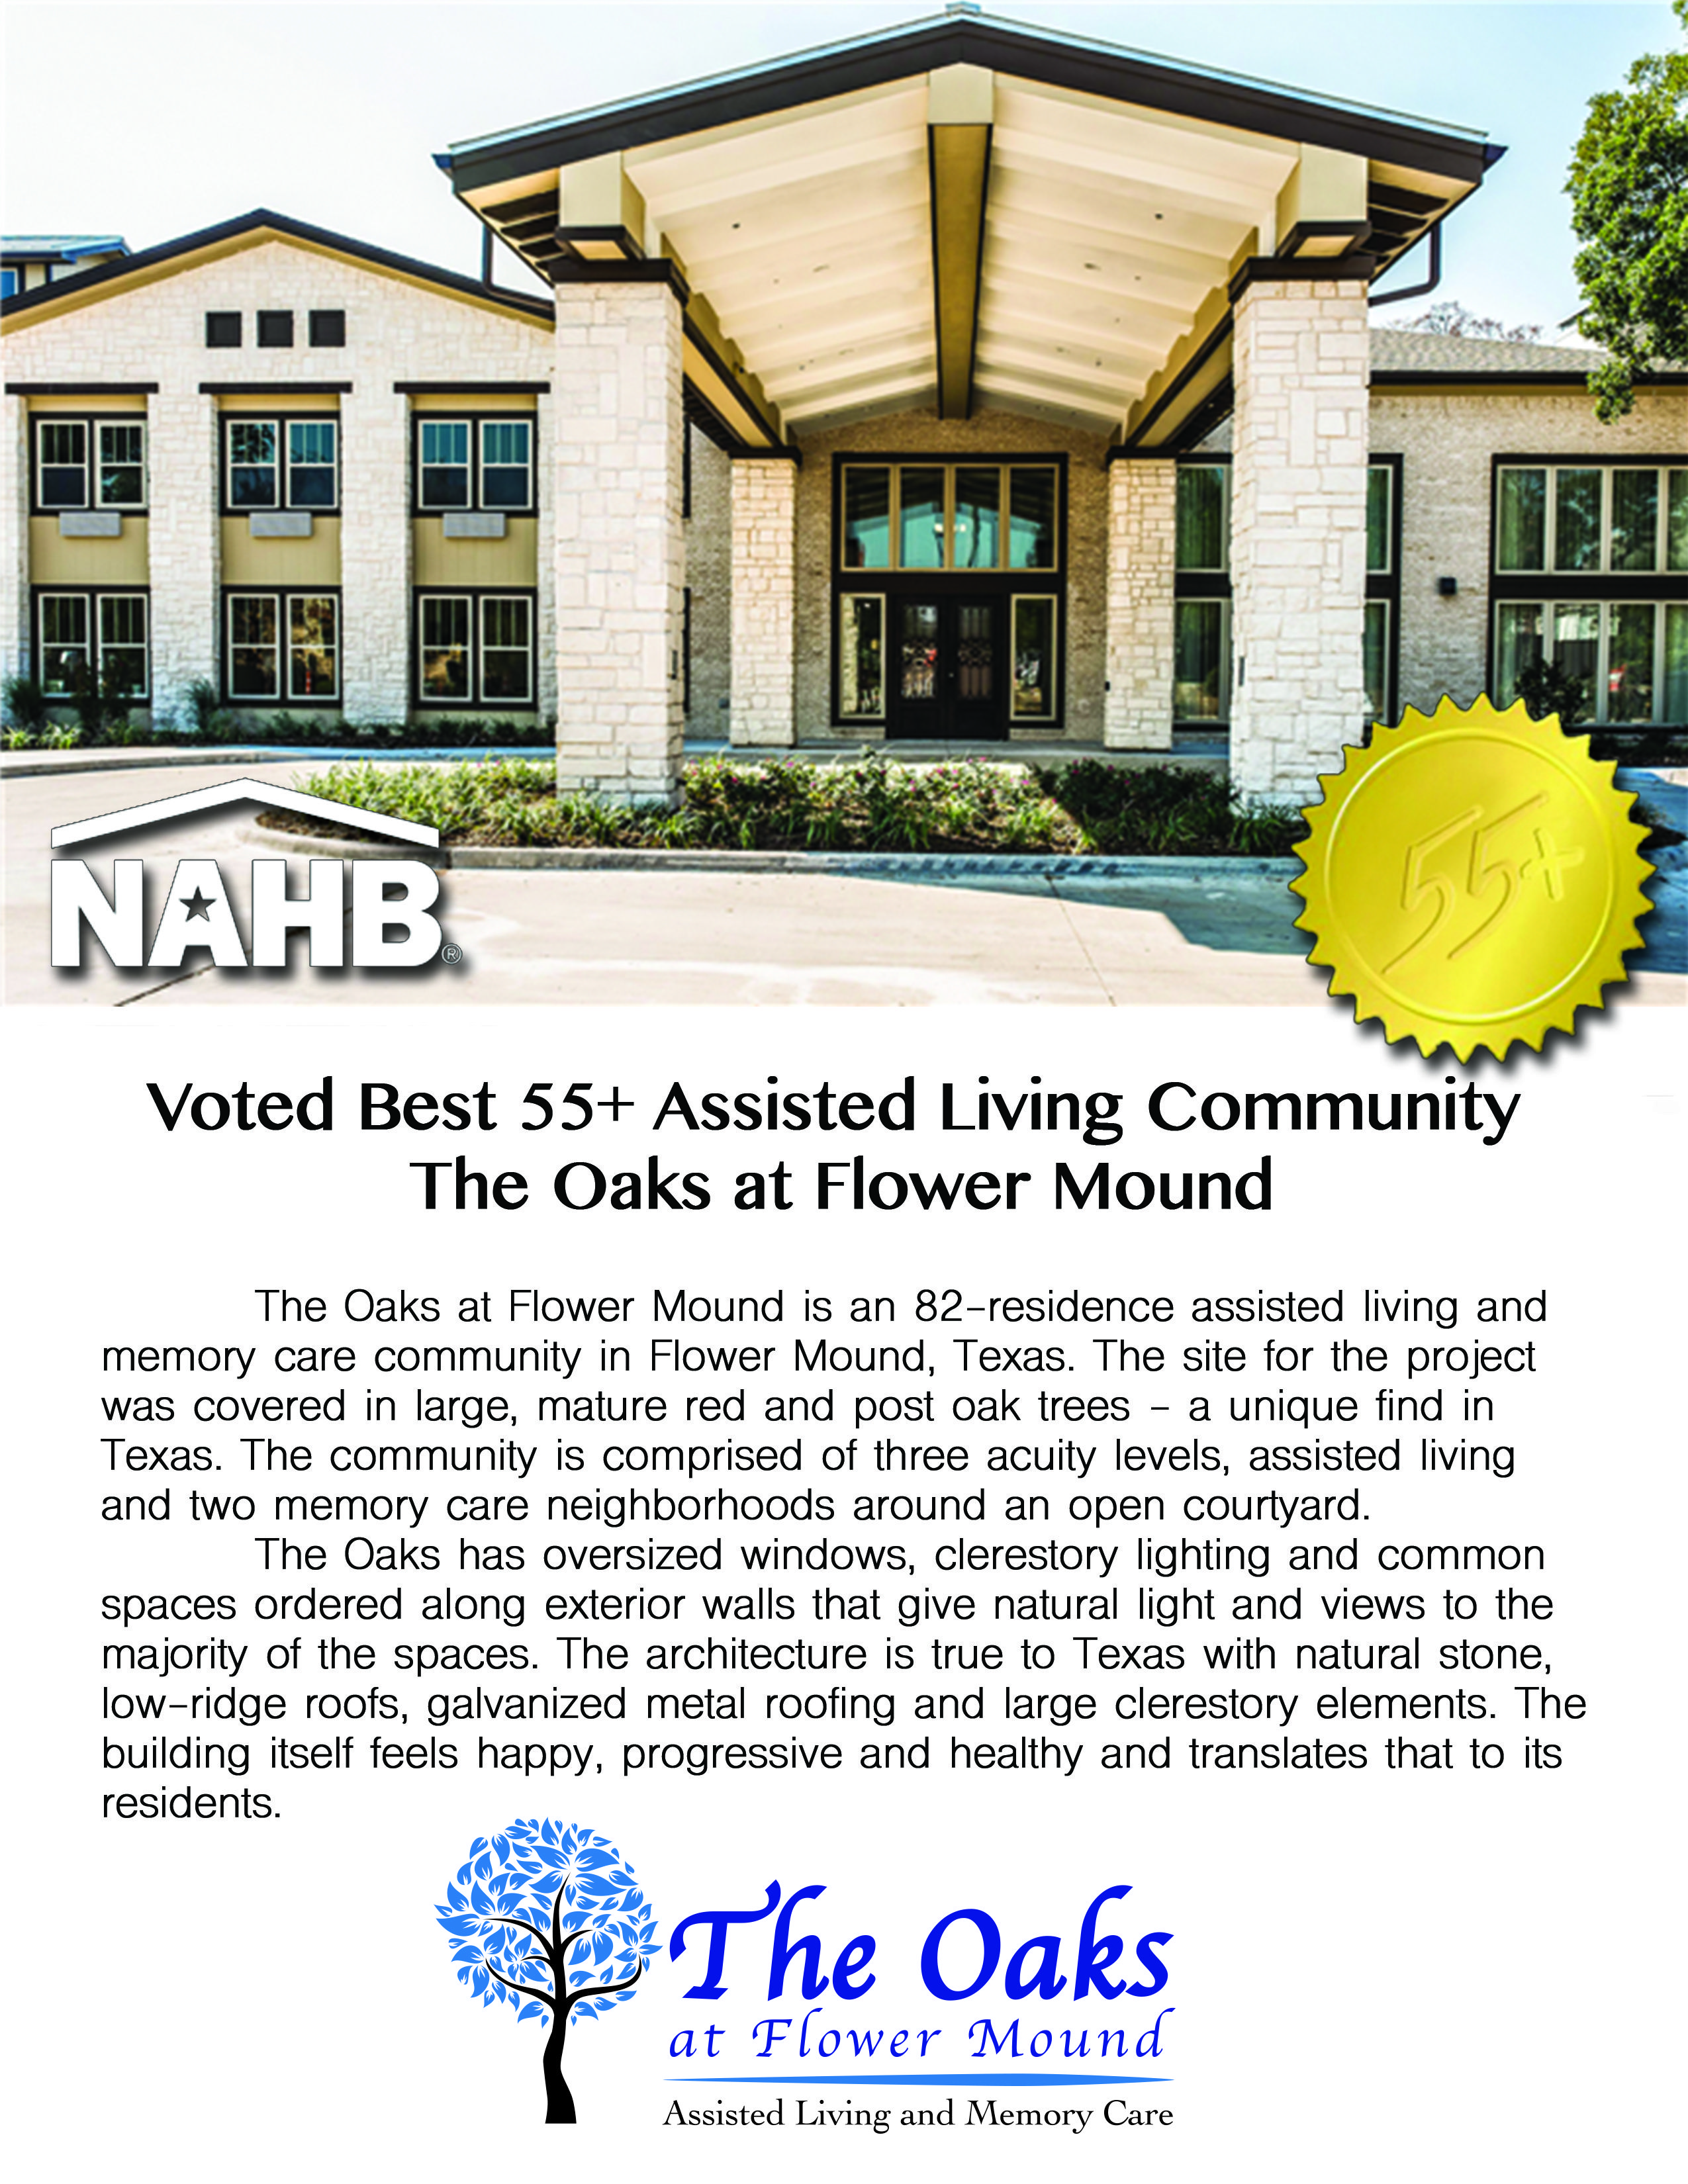 Voted Best 55 Assisted Living Community The Oaks Of Flower Mound The Obvious Choice One Of The Best Decisions You Could Senior Living Assisted Living Oaks